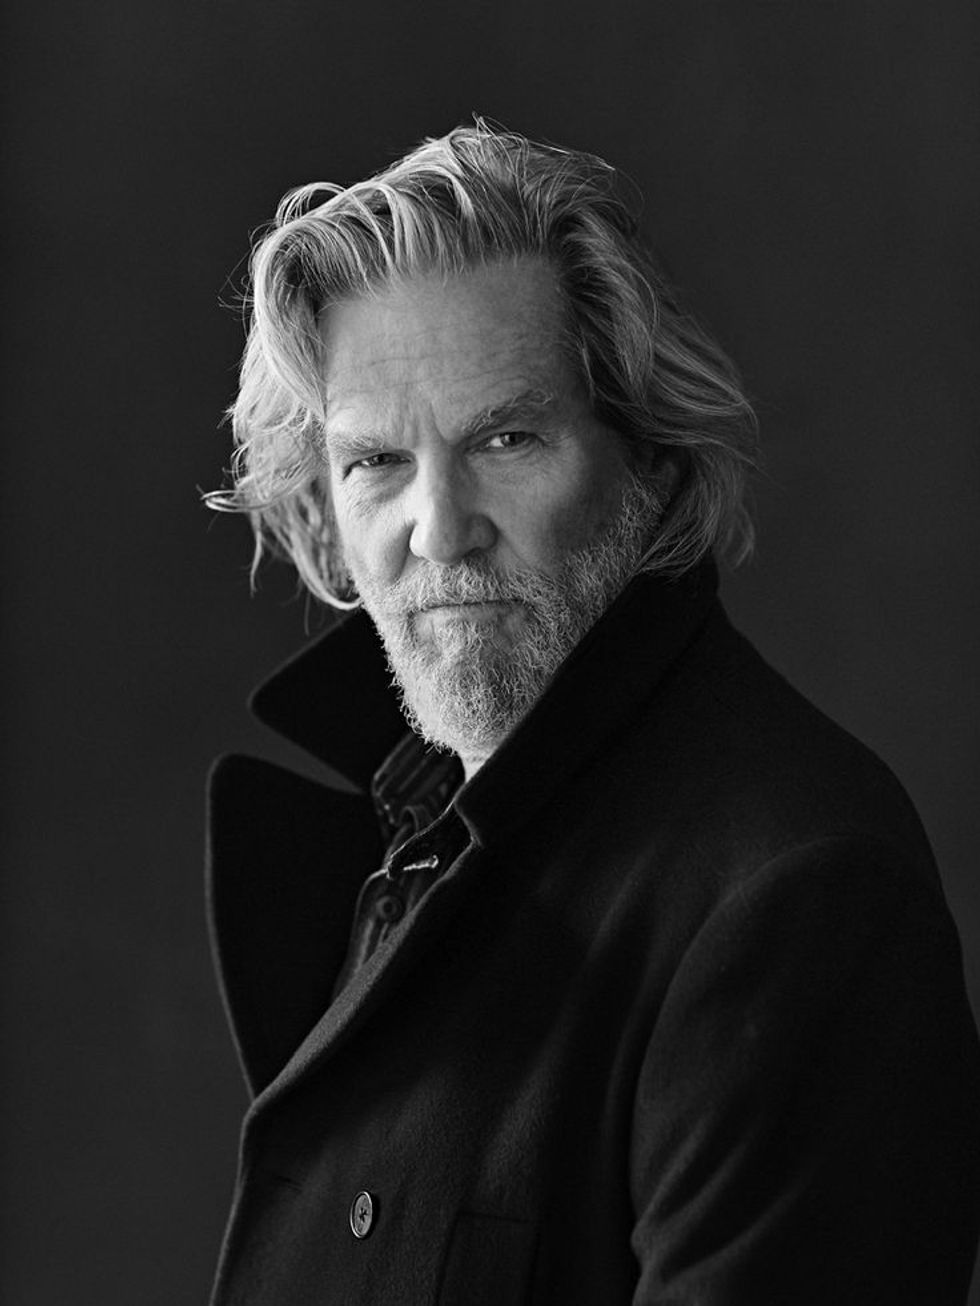 Jeff Bridges On His Sleeping Tapes Album, Flying Dreams and the Power of Naps